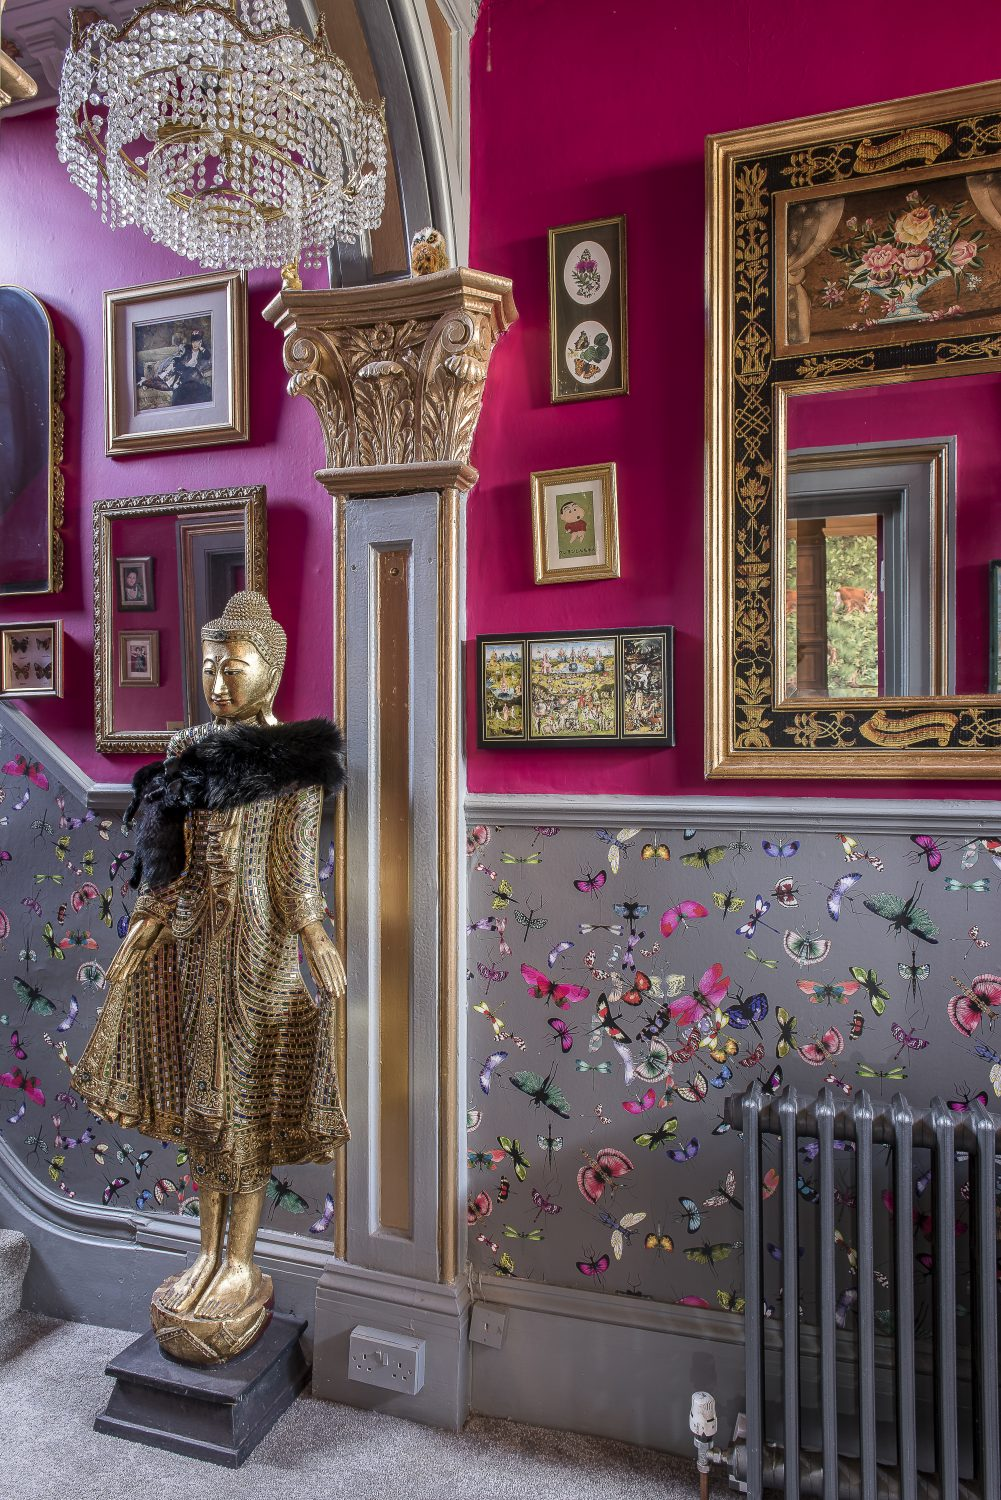 With its wall of mirrors, the hallway is Annemarie's 'homage to Versailles'. The butterfly wallpaper in the hall and up the stairs is by Christian Lacroix